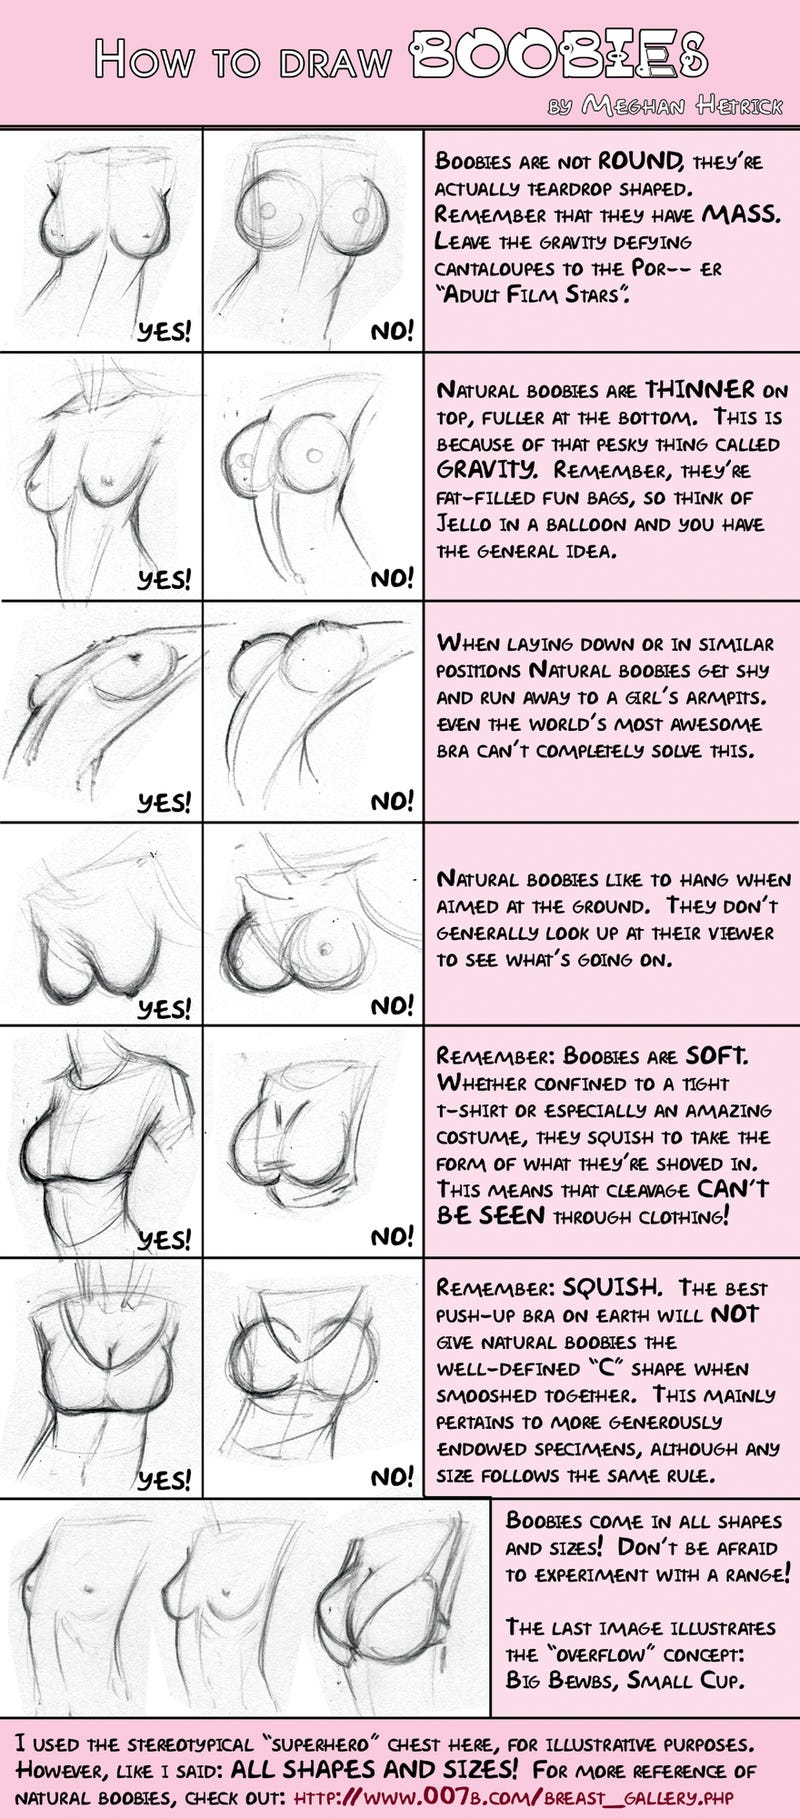 A Guide to drawing breasts.